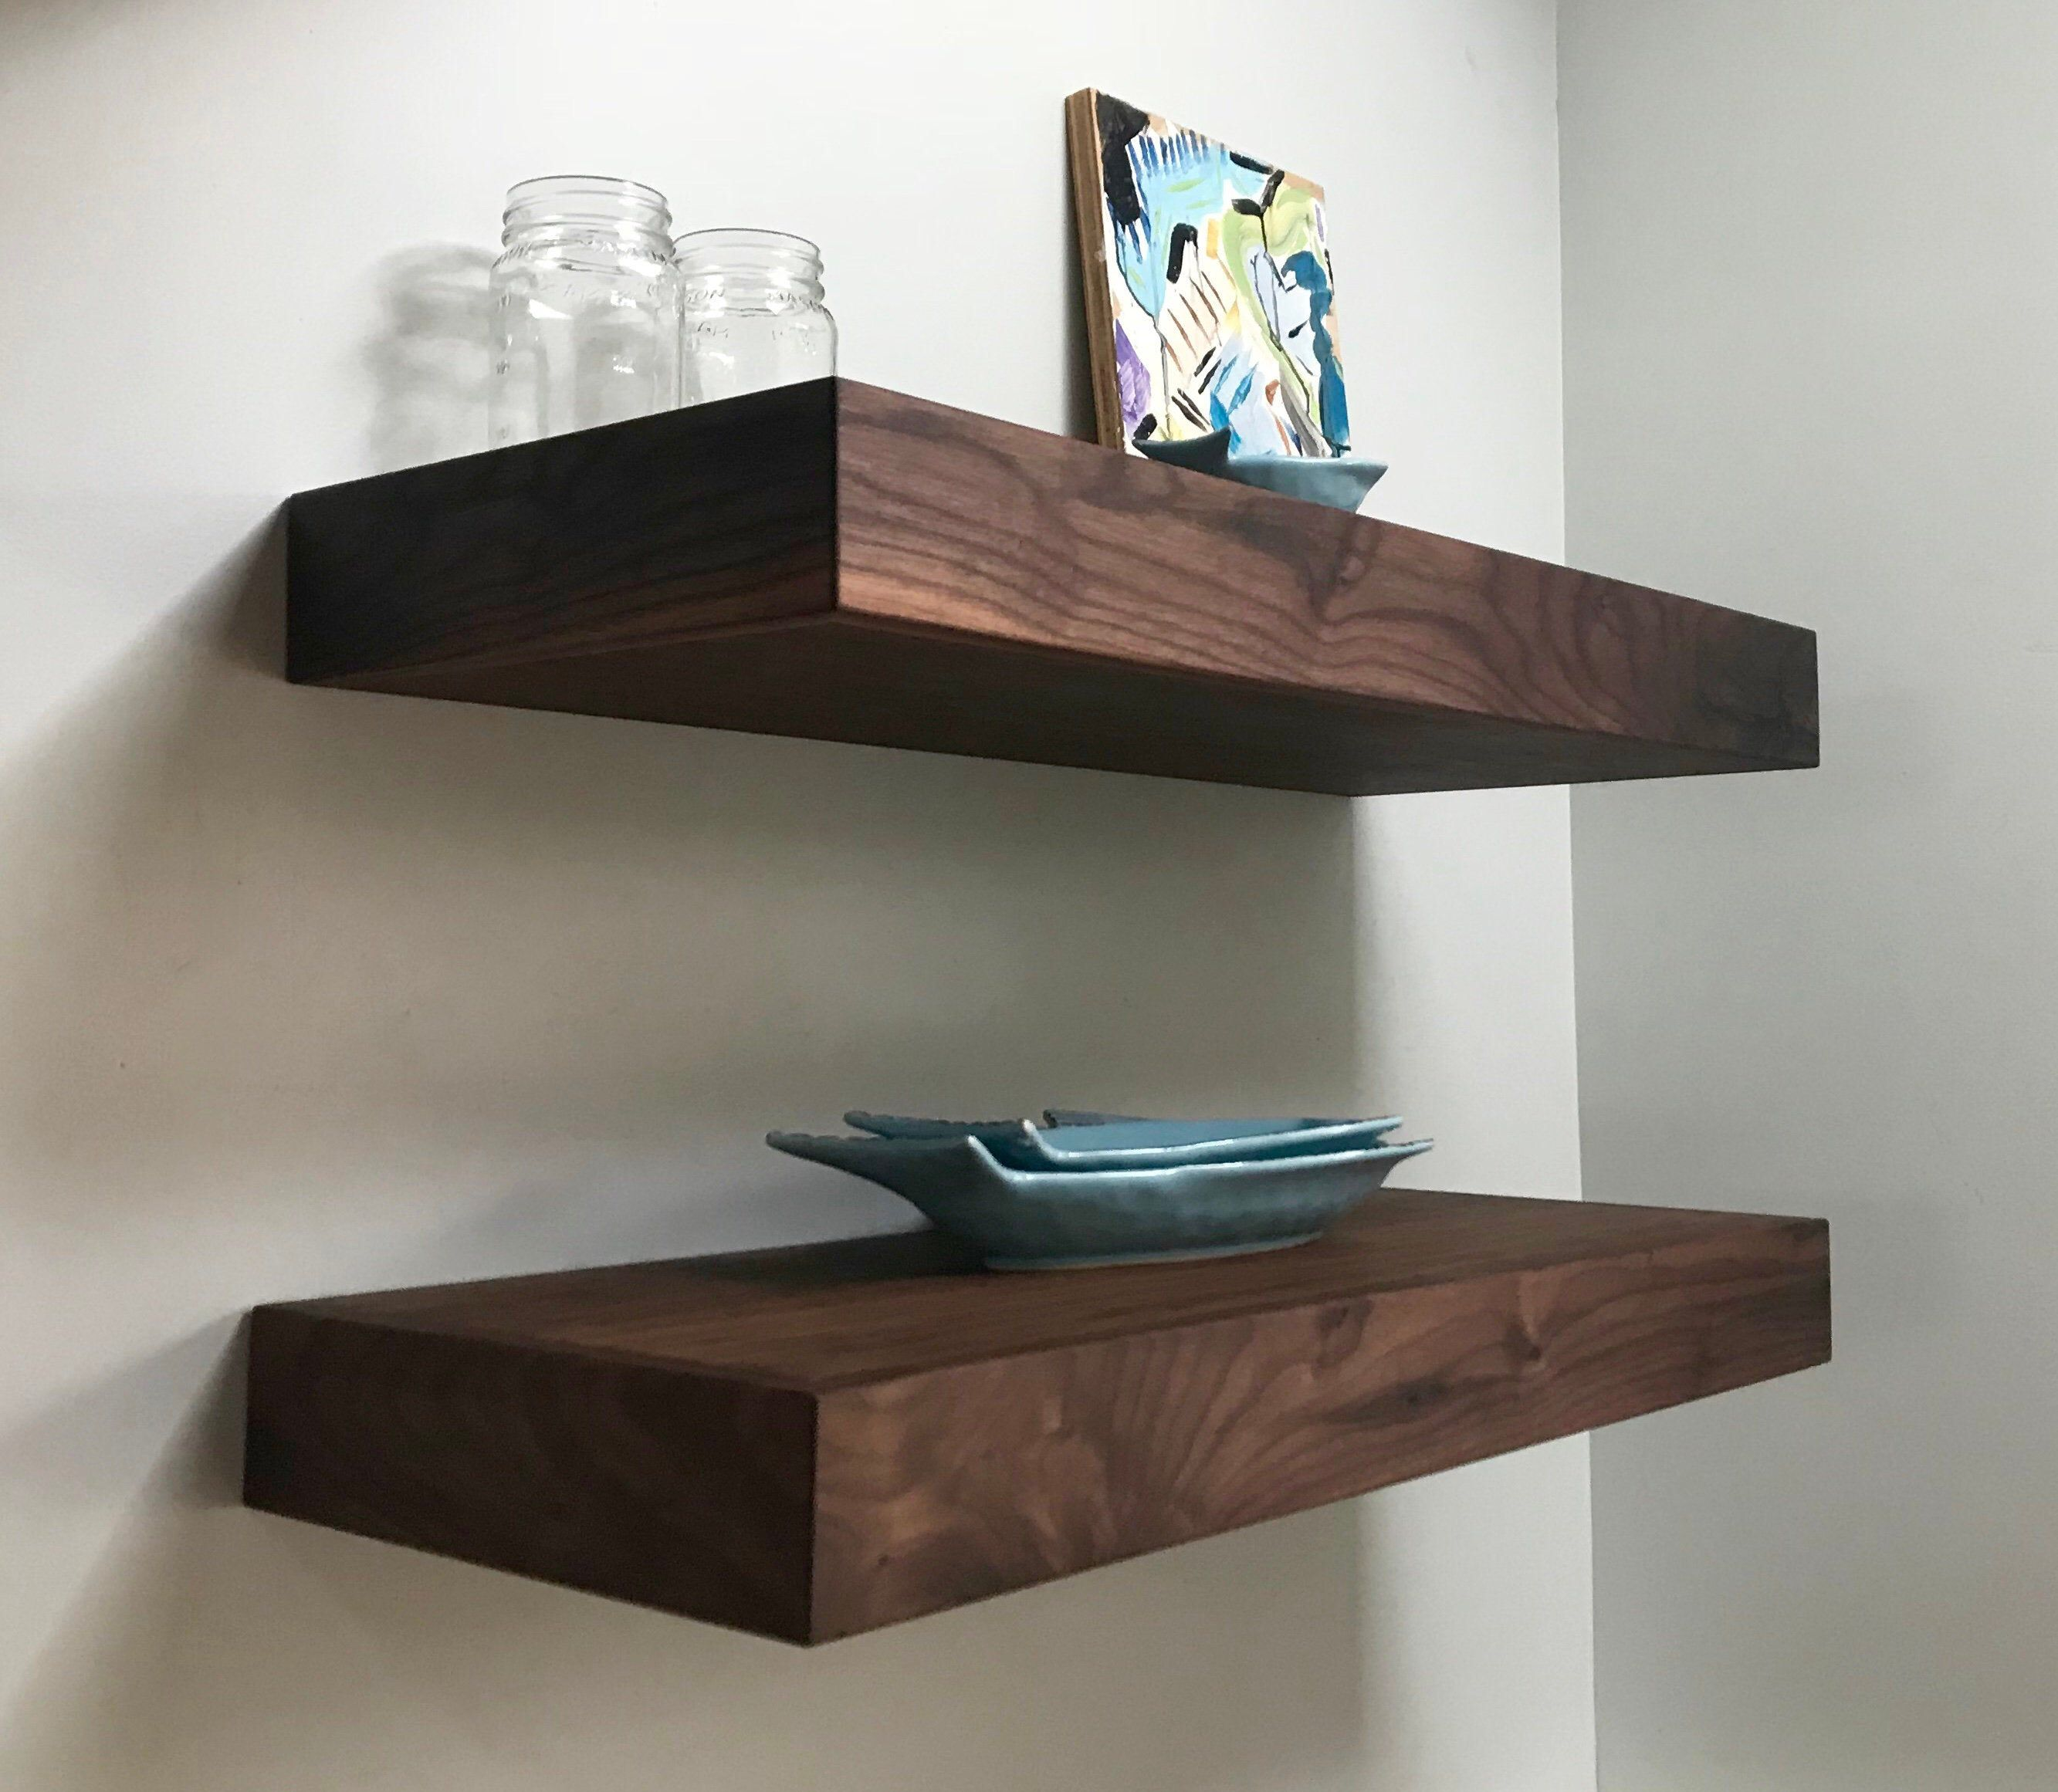 floating shelves walnut white oak mahogany floating shelf kitchen shelves wood shelf mo on kitchen floating shelves id=73008